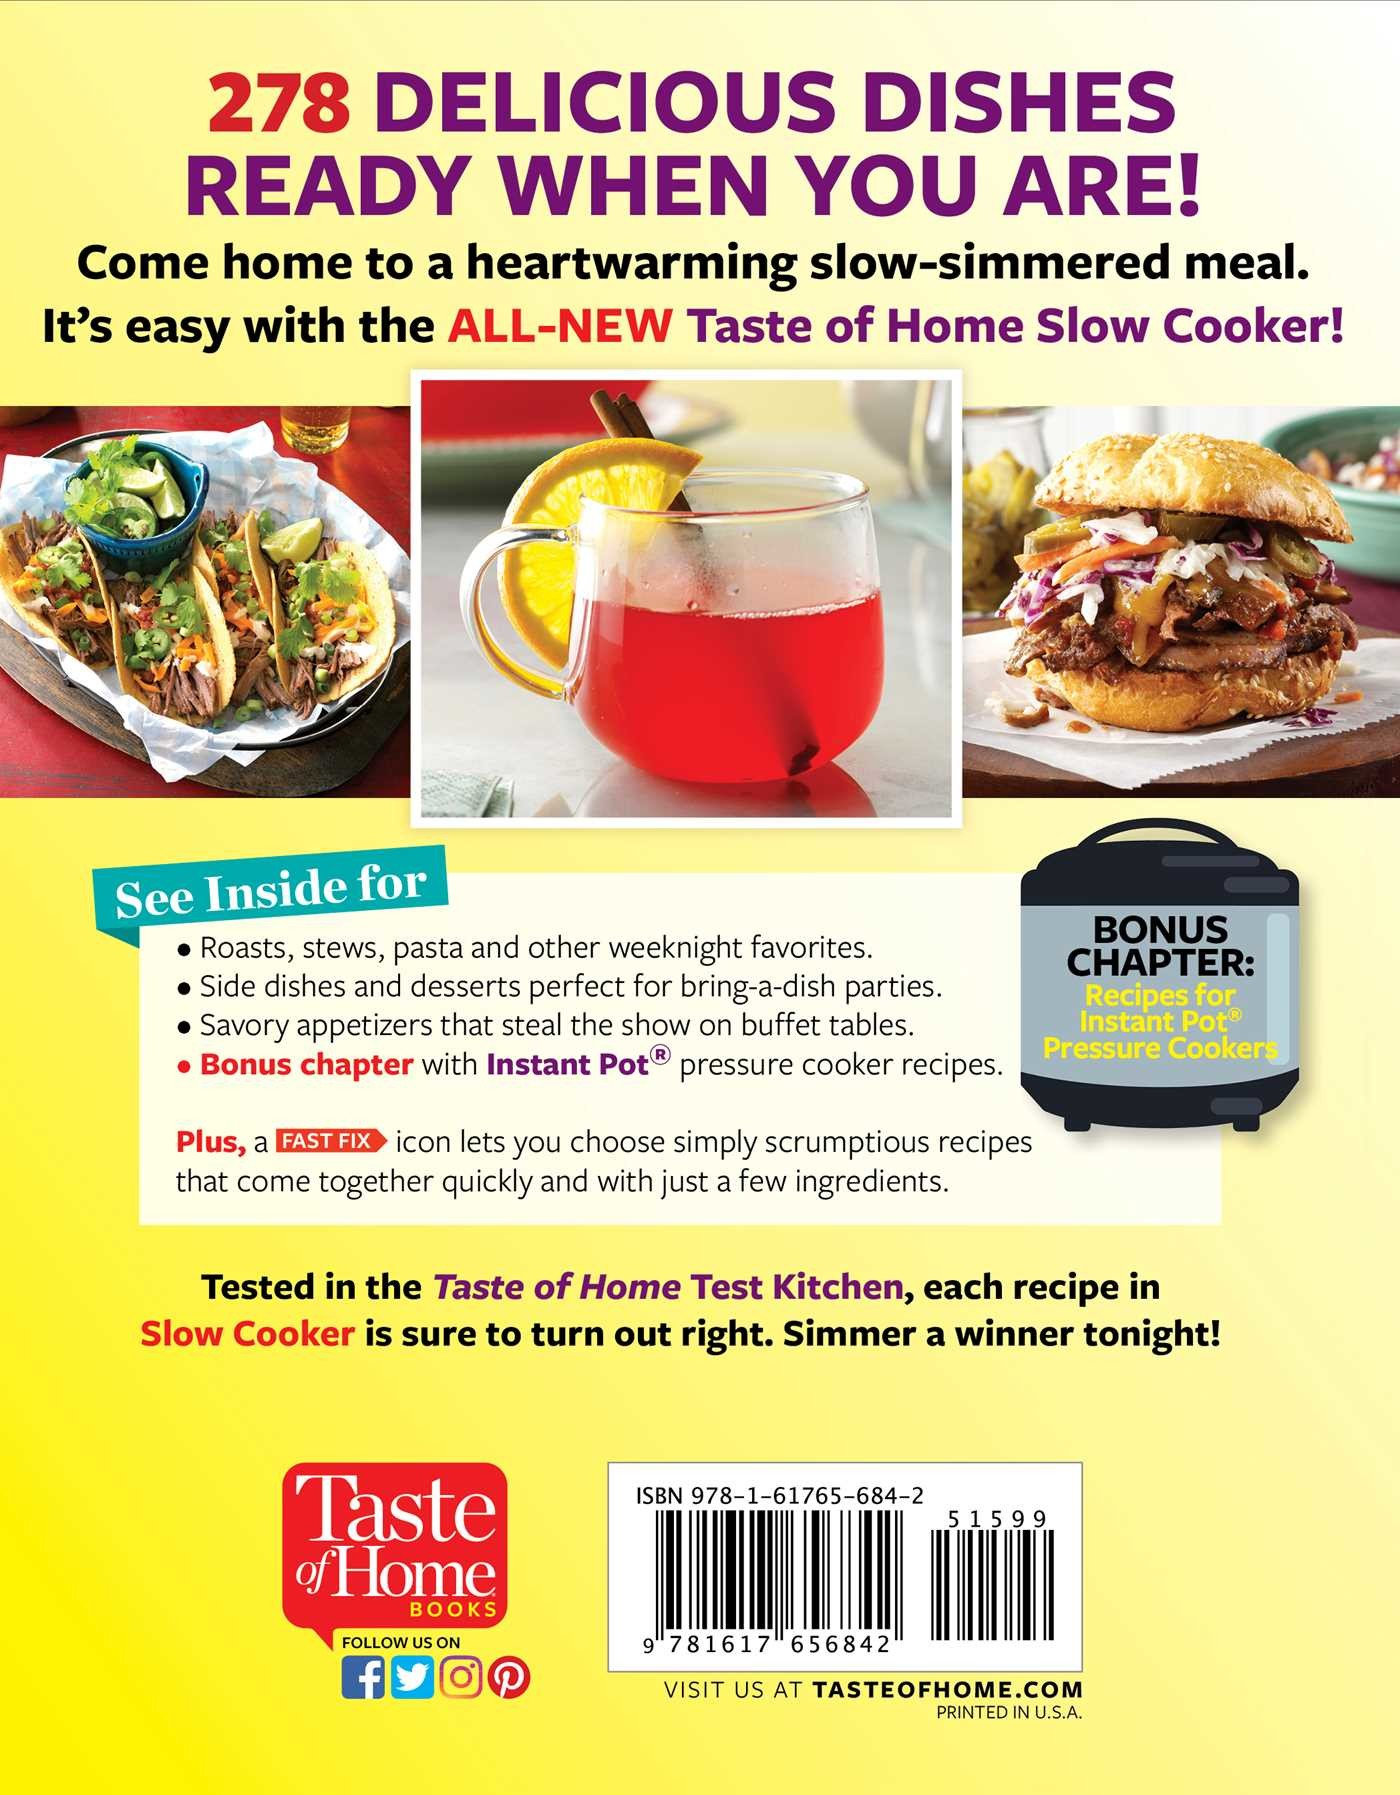 Taste of home slow cooker 3e 9781617656842.in01